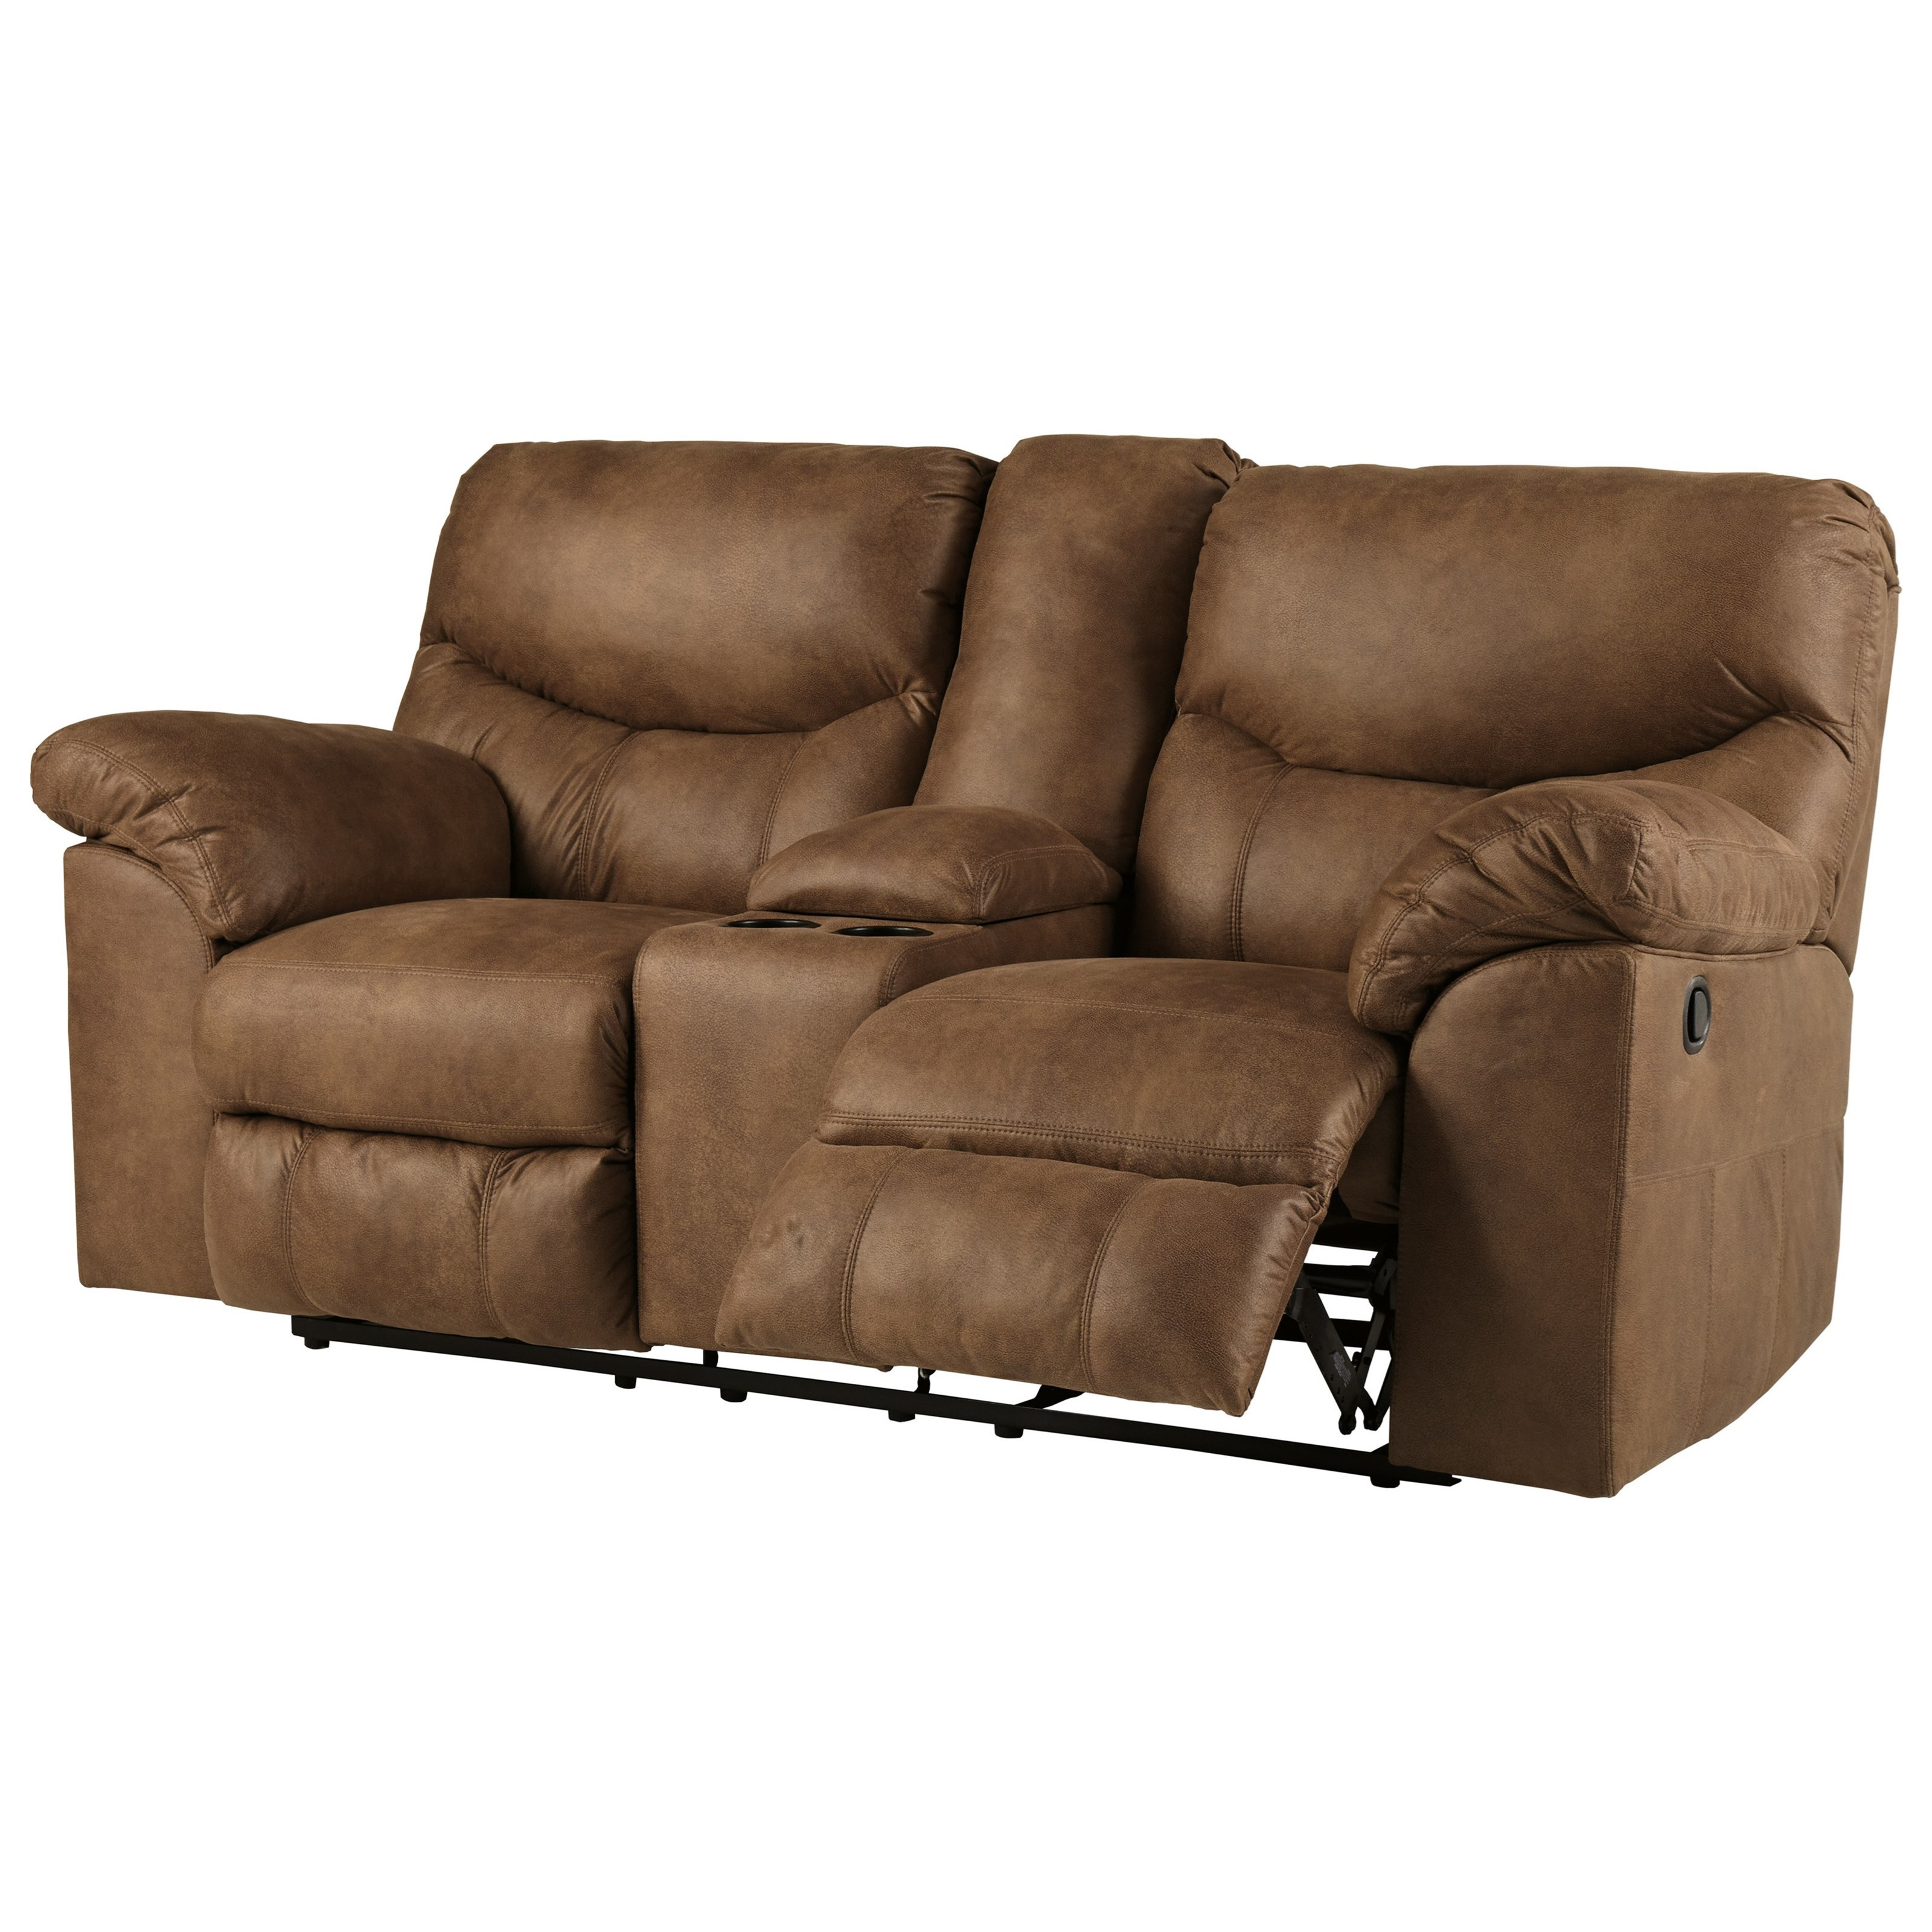 Signature Design By Ashley Boxberg Casual Double Reclining